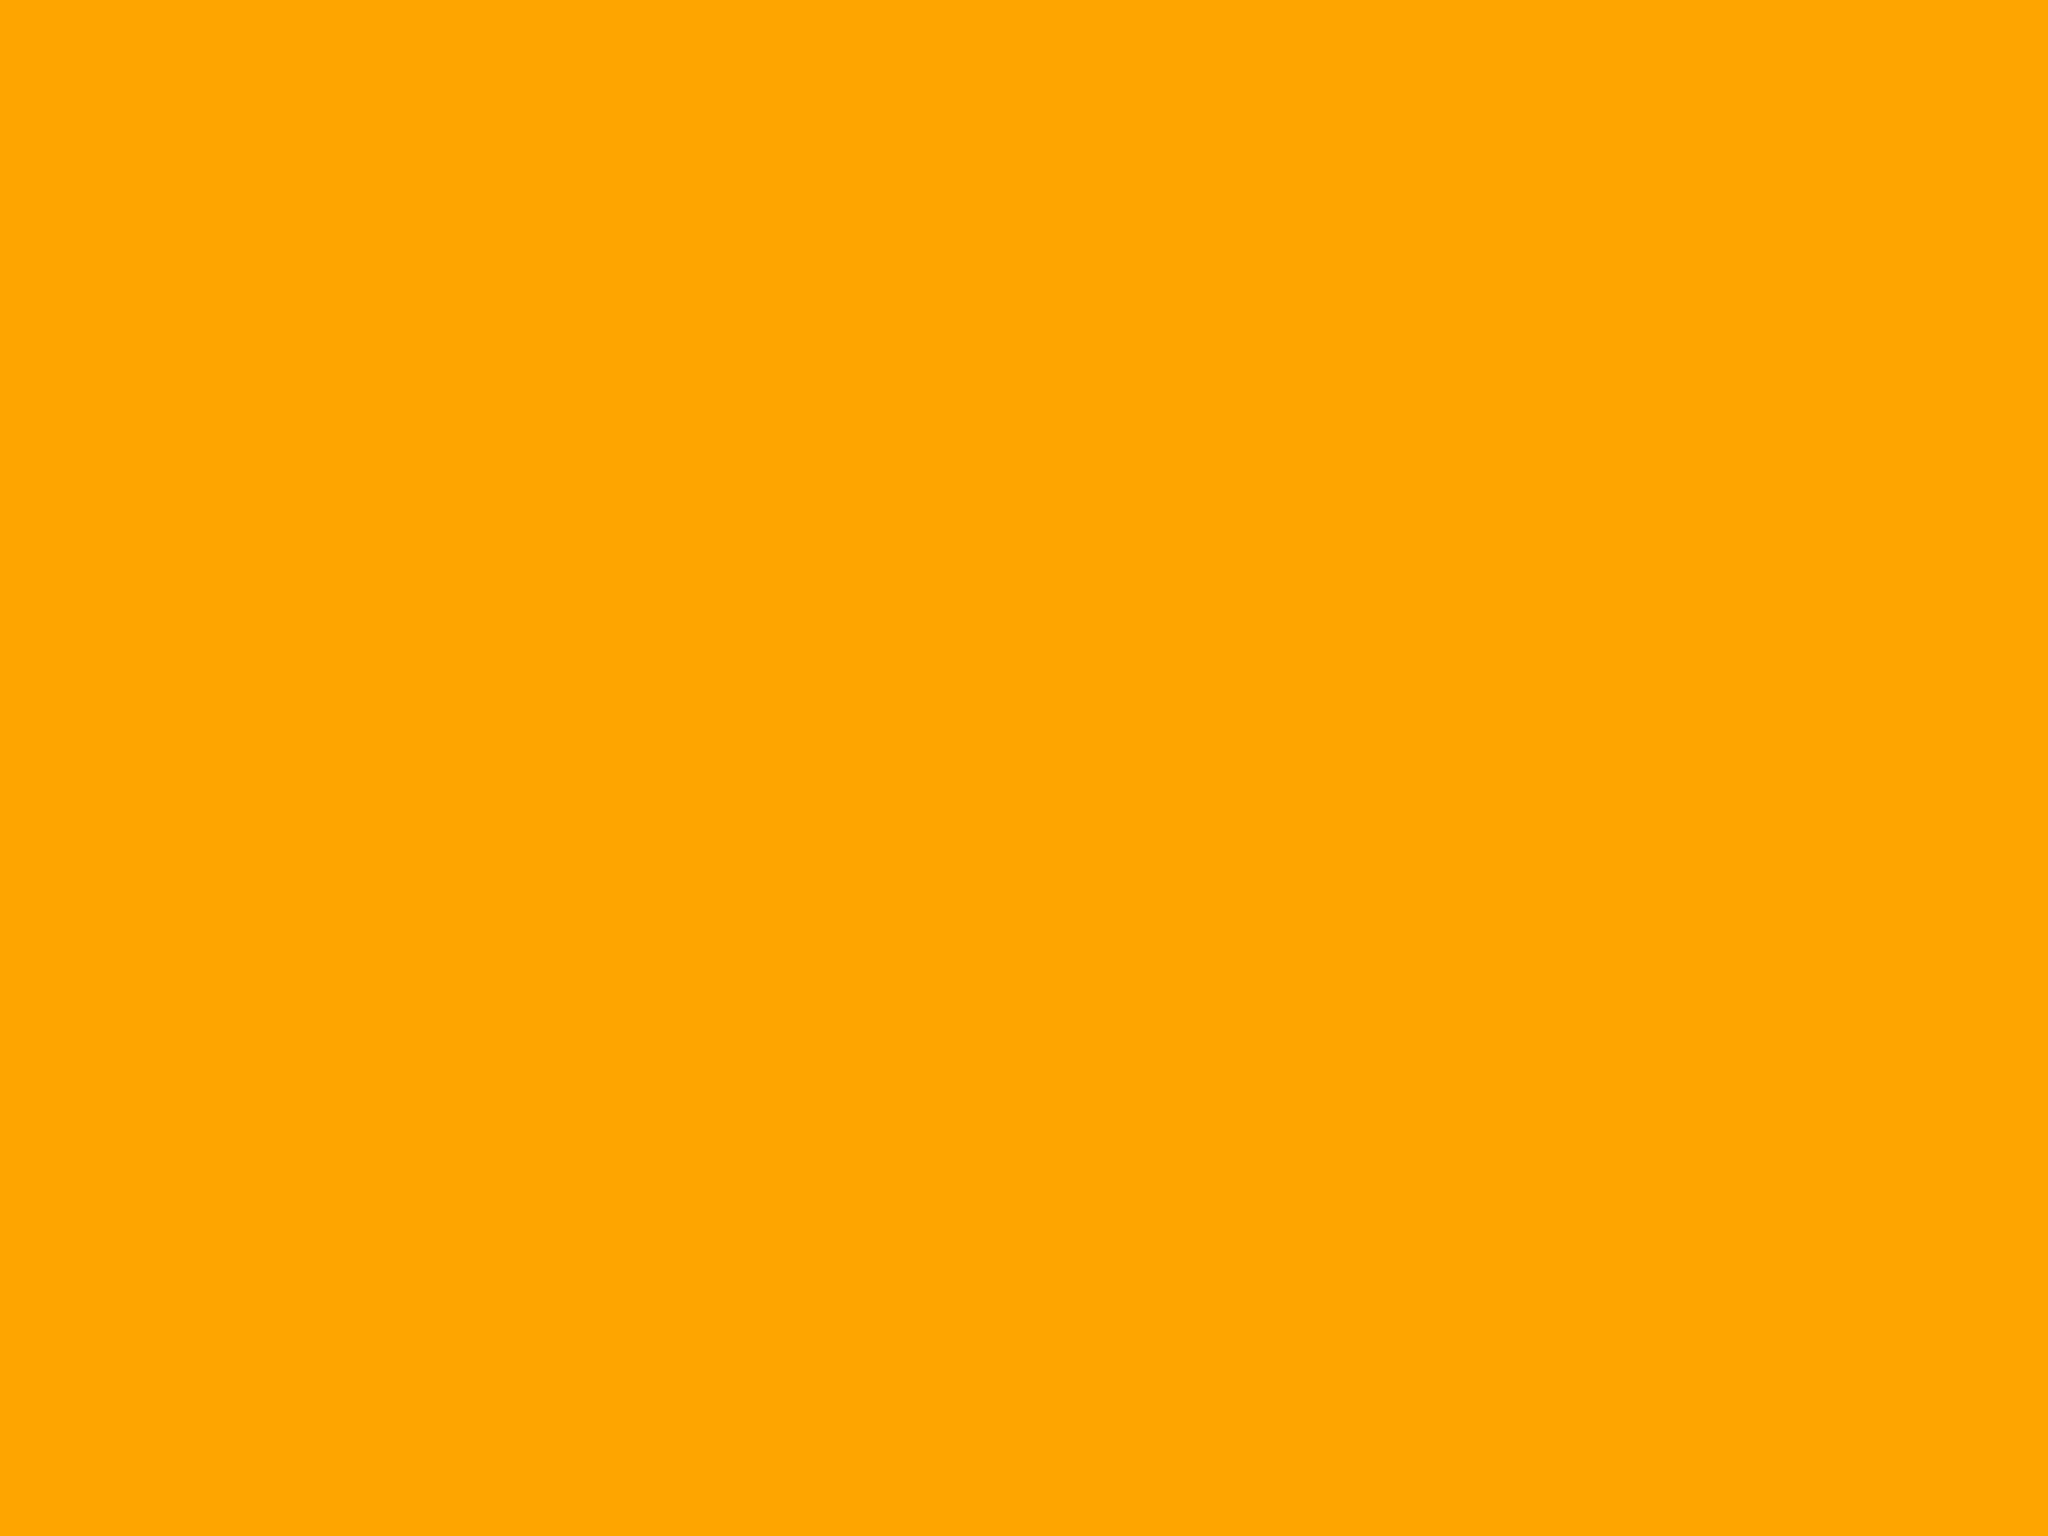 2048x1536 Orange Web Solid Color Background